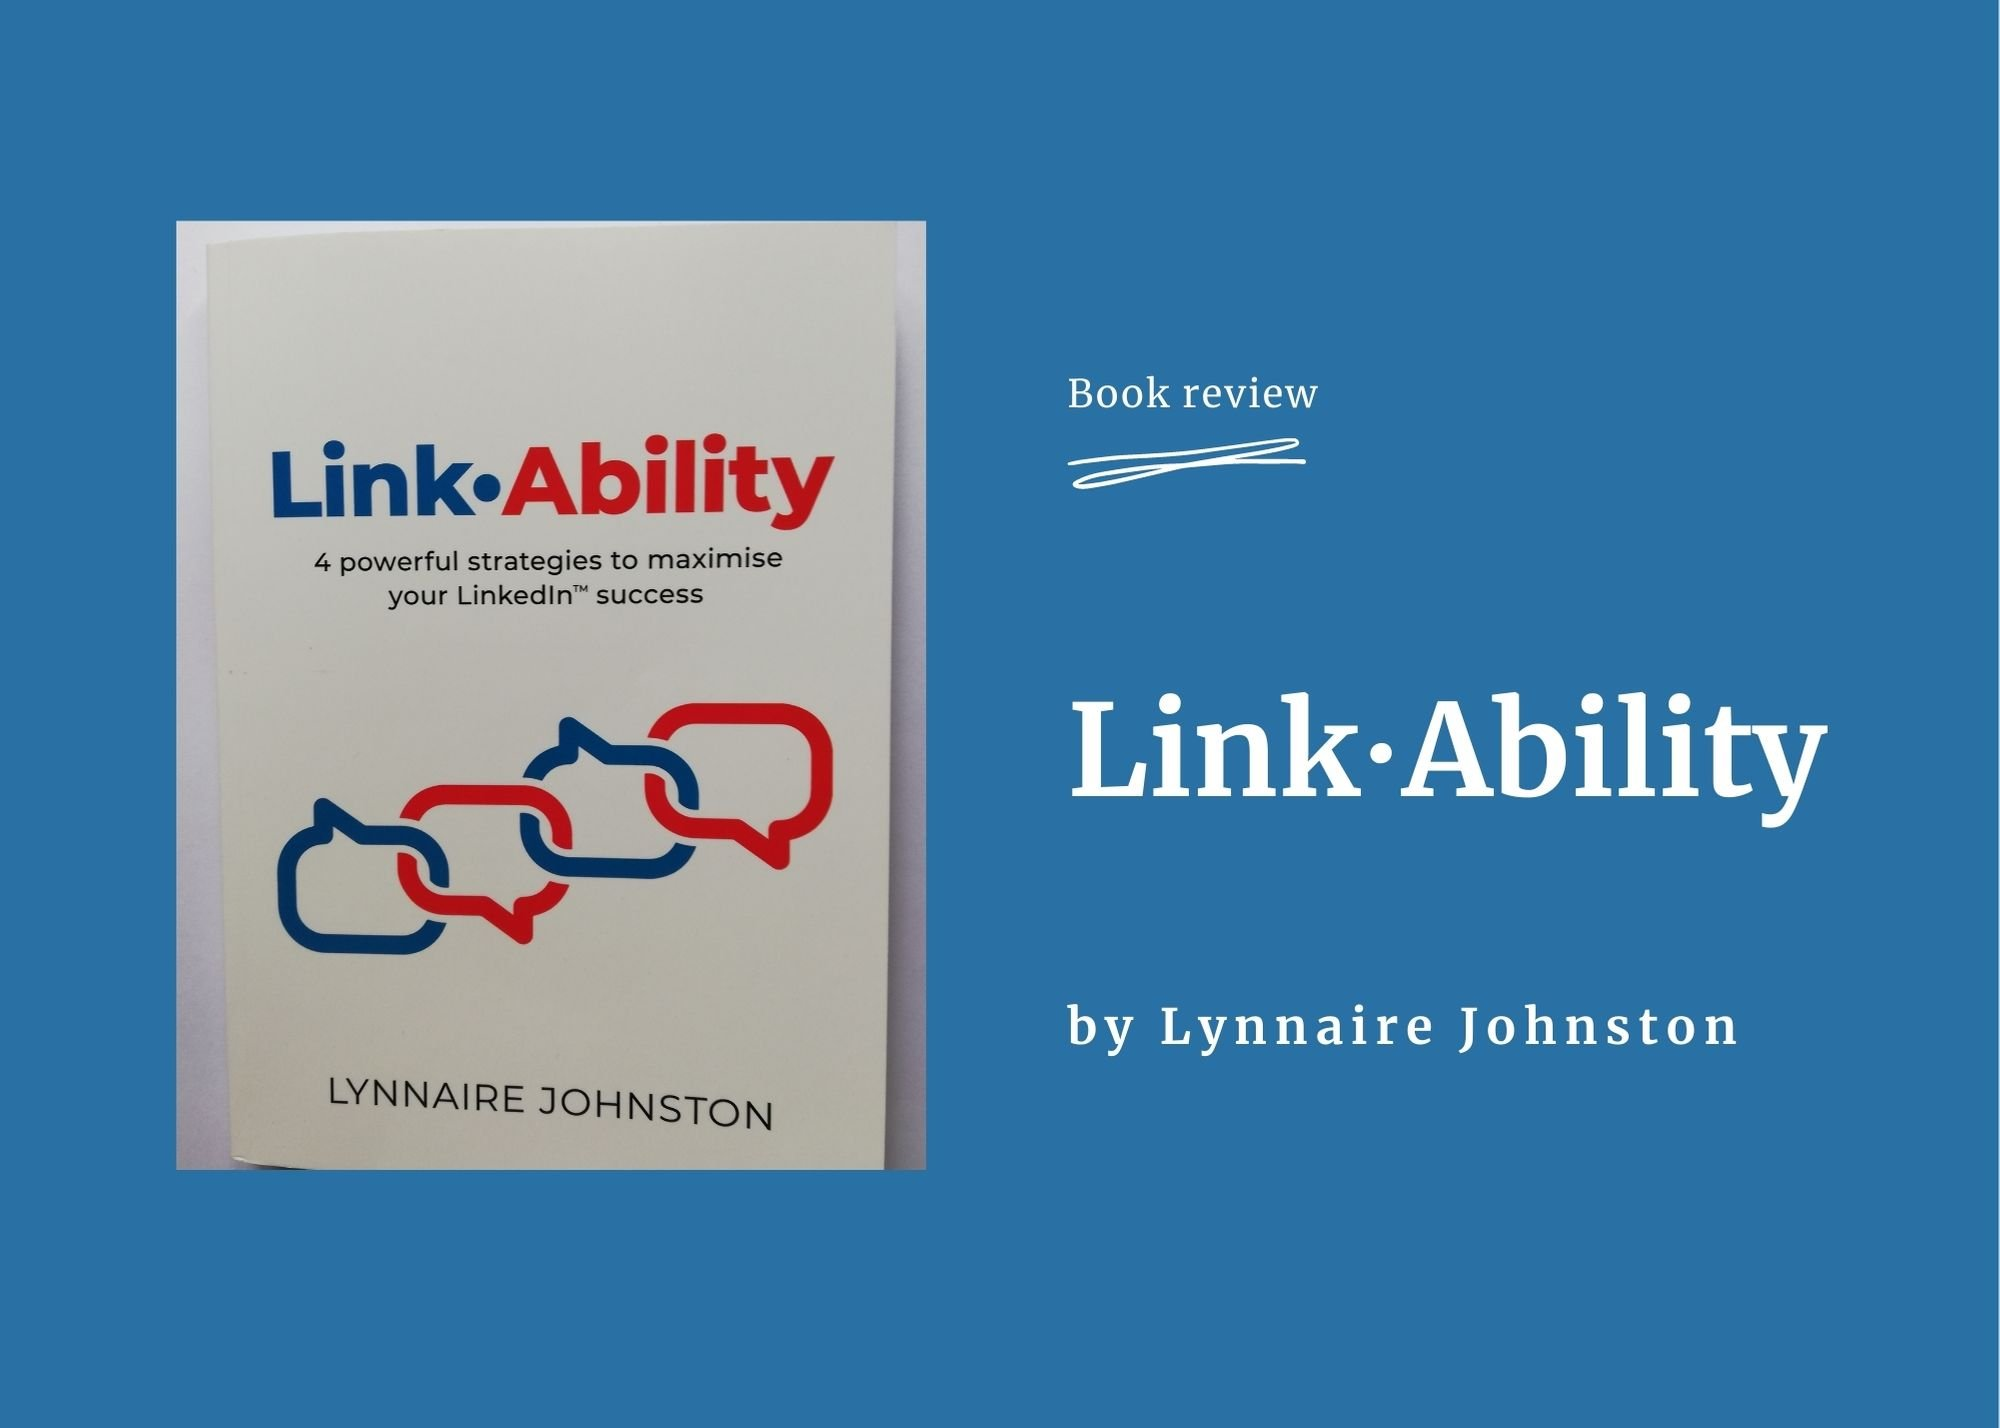 Link Ability, by Lynnaire Johnston